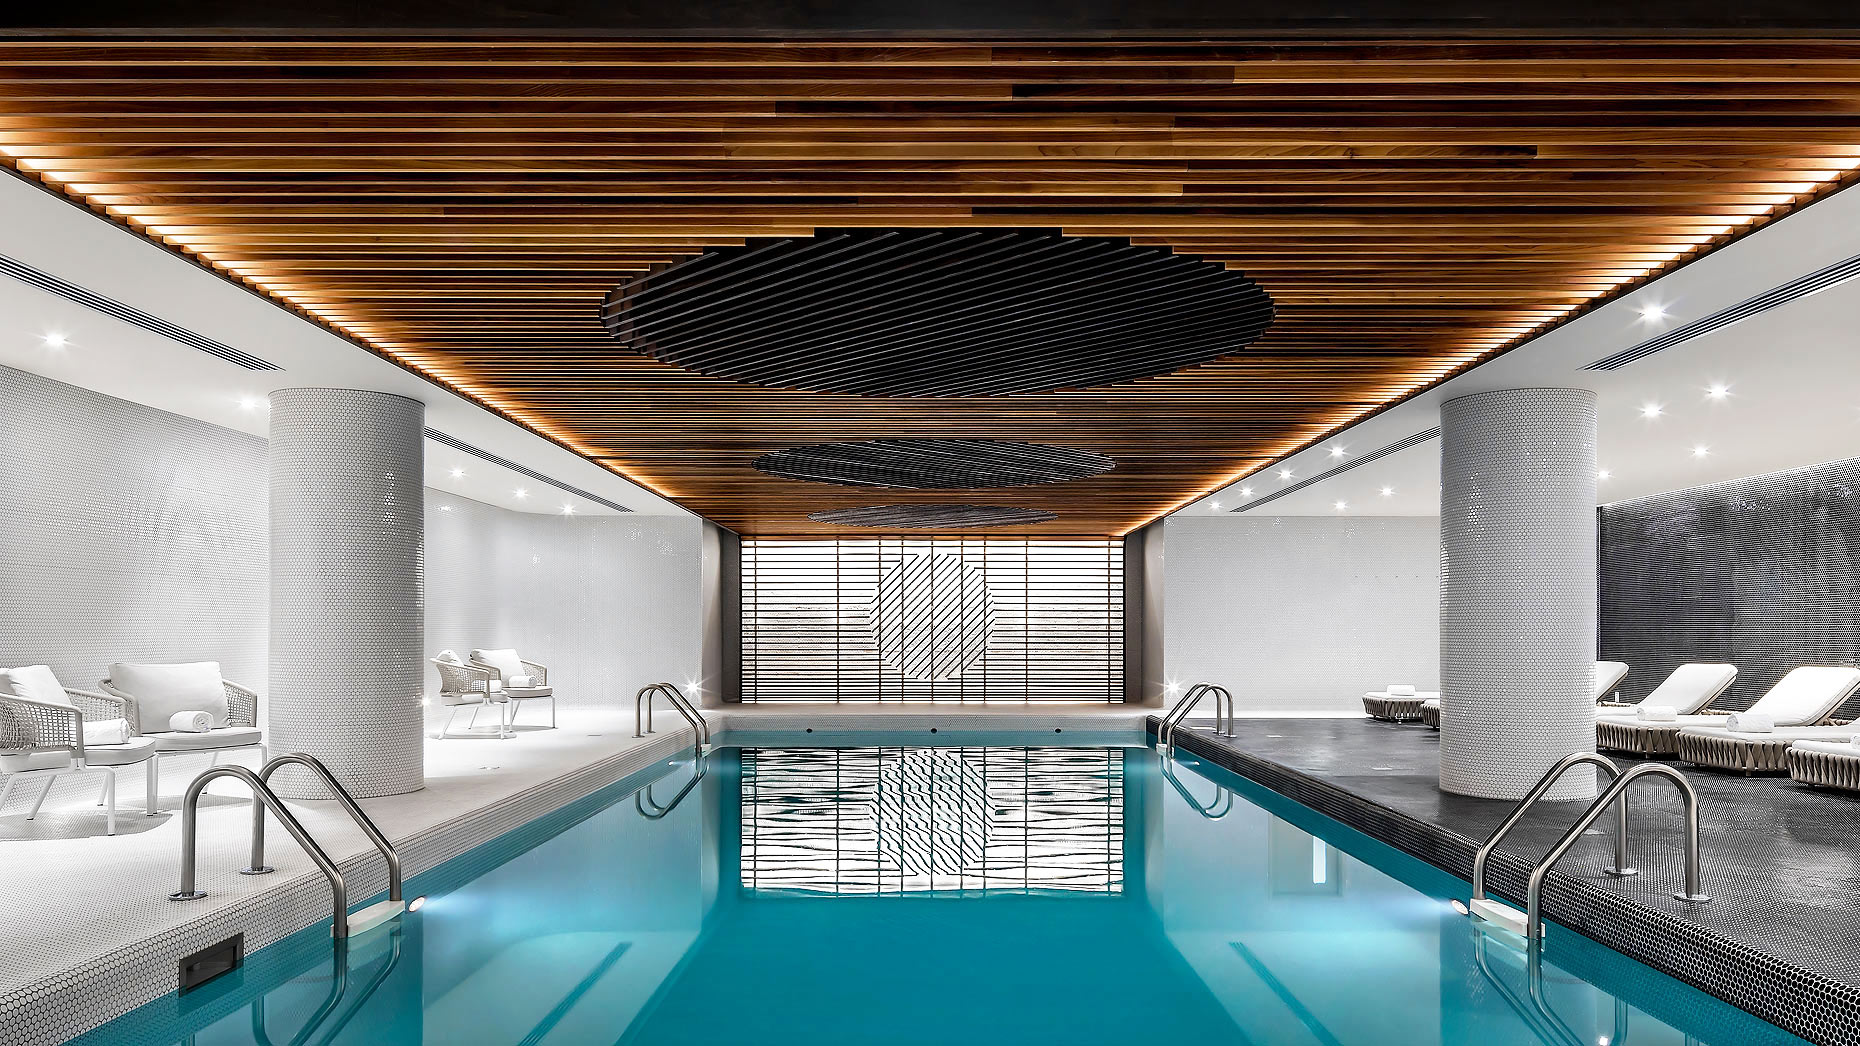 Fairmont Queen Elizabeth Hotel, Montreal, Pool - design by Sid Lee Architects